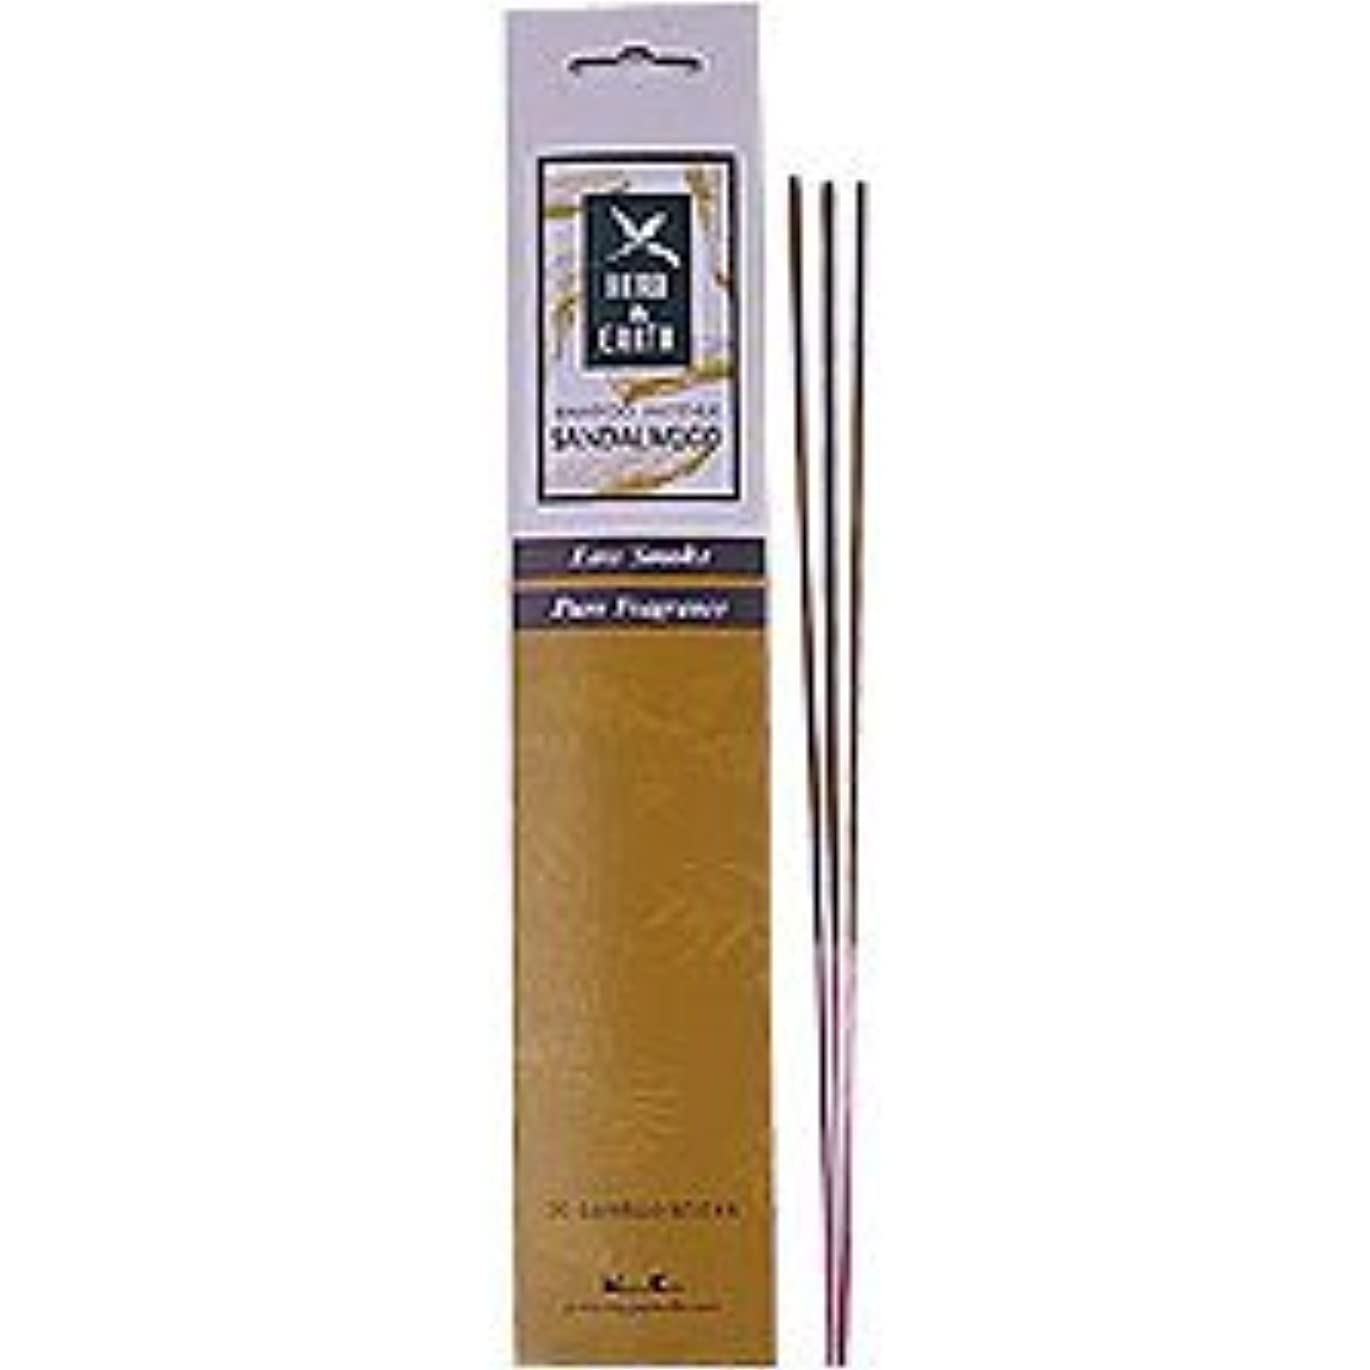 埋め込む行方不明準拠Sandalwood - Herb and Earth Incense From Nippon Kodo - 20 Stick Package by Herb & Earth [並行輸入品]